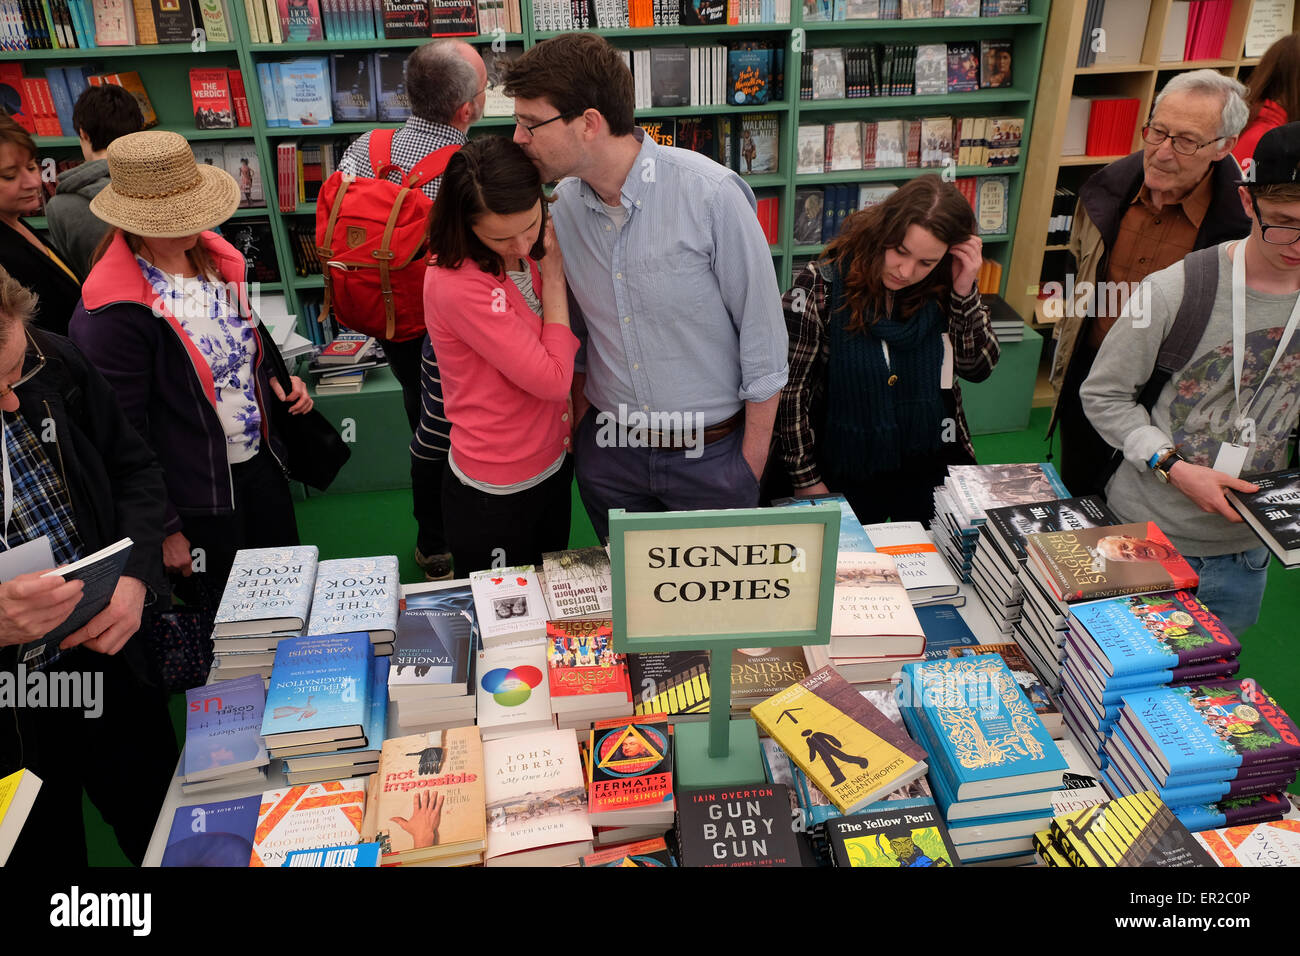 Hay Festival, Powys, Wales, UK. 25th May, 2015.  Love among the books - Crowds gather in the Hay Festival bookshop - Stock Image